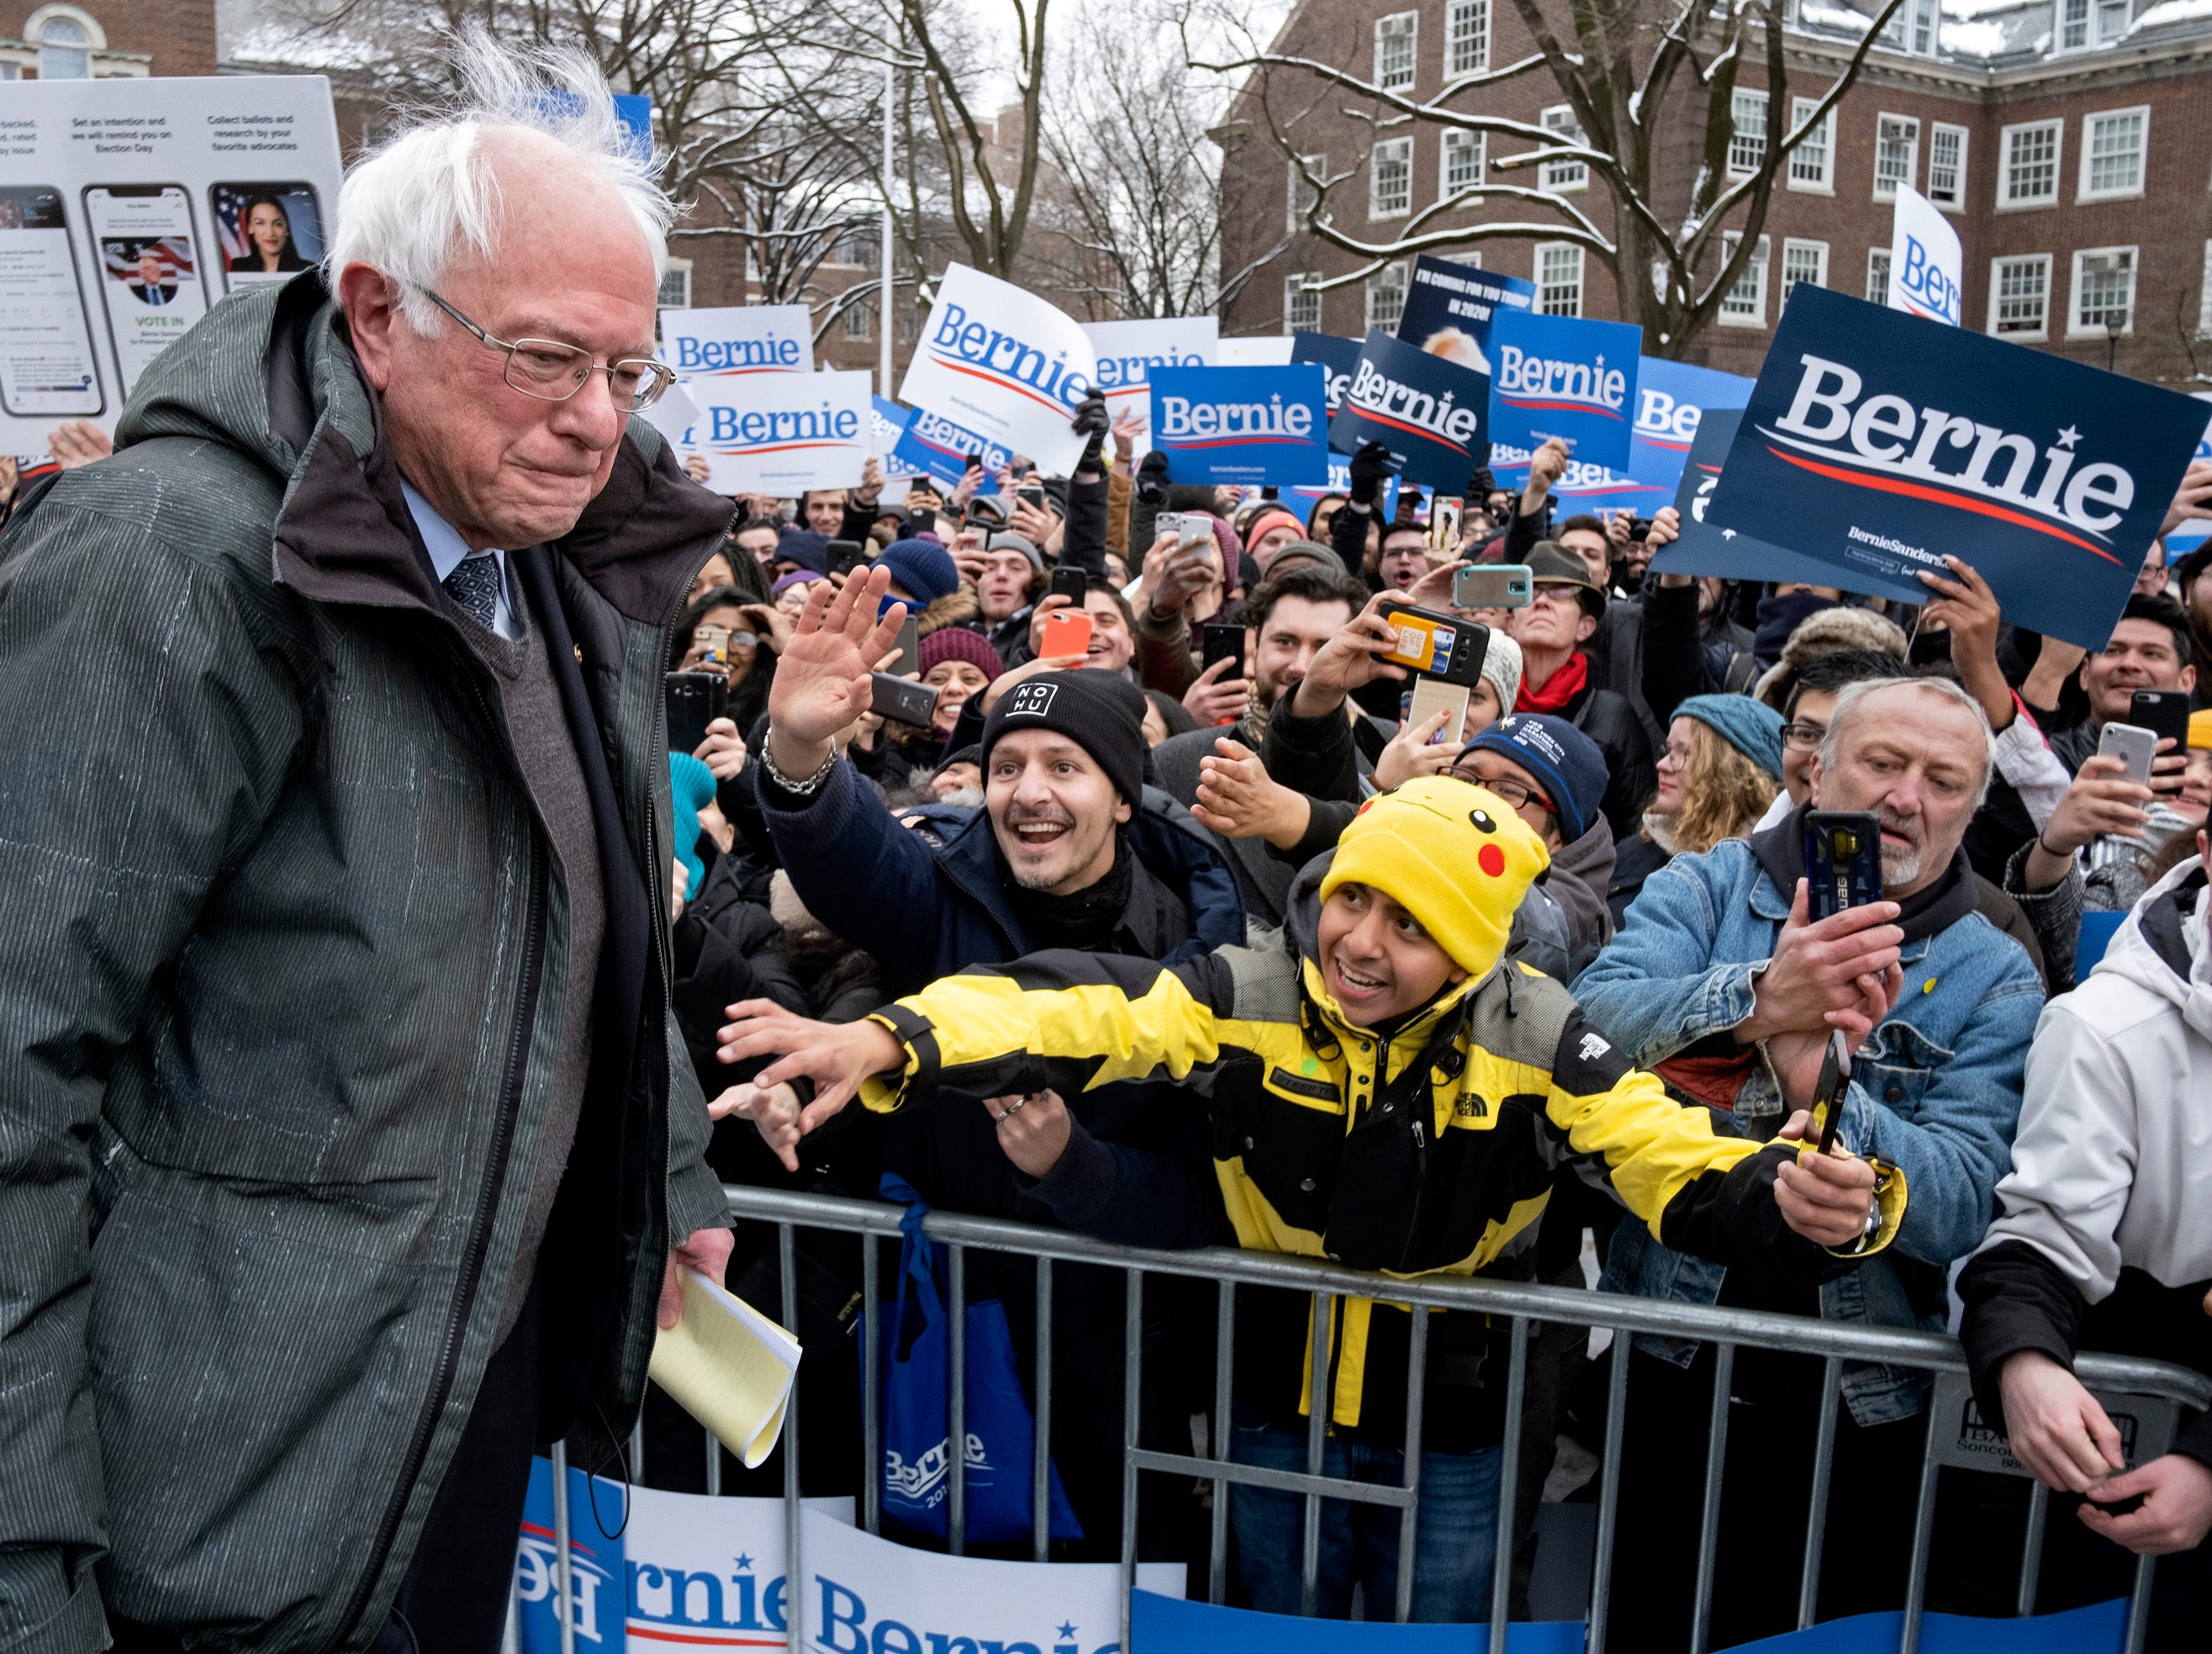 Sen. Bernie Sanders, I-Vt., greets supporters as he arrives to kick off his political campaign Saturday, March 2, 2019, in the Brooklyn borough of New York as he makes a bid for President of the United States in 2020, his second campaign for the office.